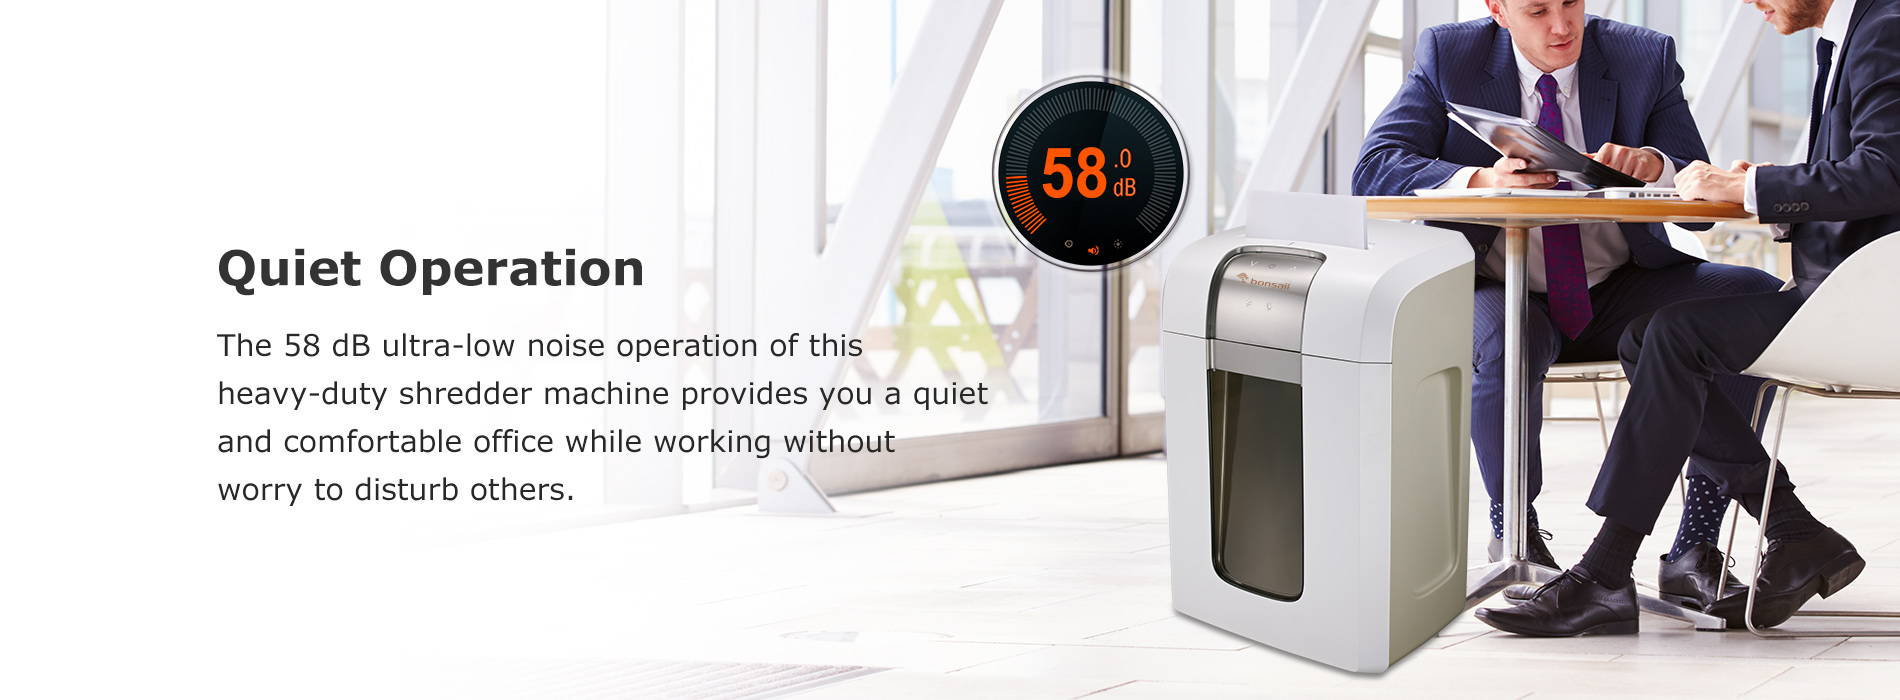 Quiet Operation The 58 dB ultra-low noise operation of this heavy-duty shredder machine provides you a quiet and comfortable office while working without worry to disturb others.